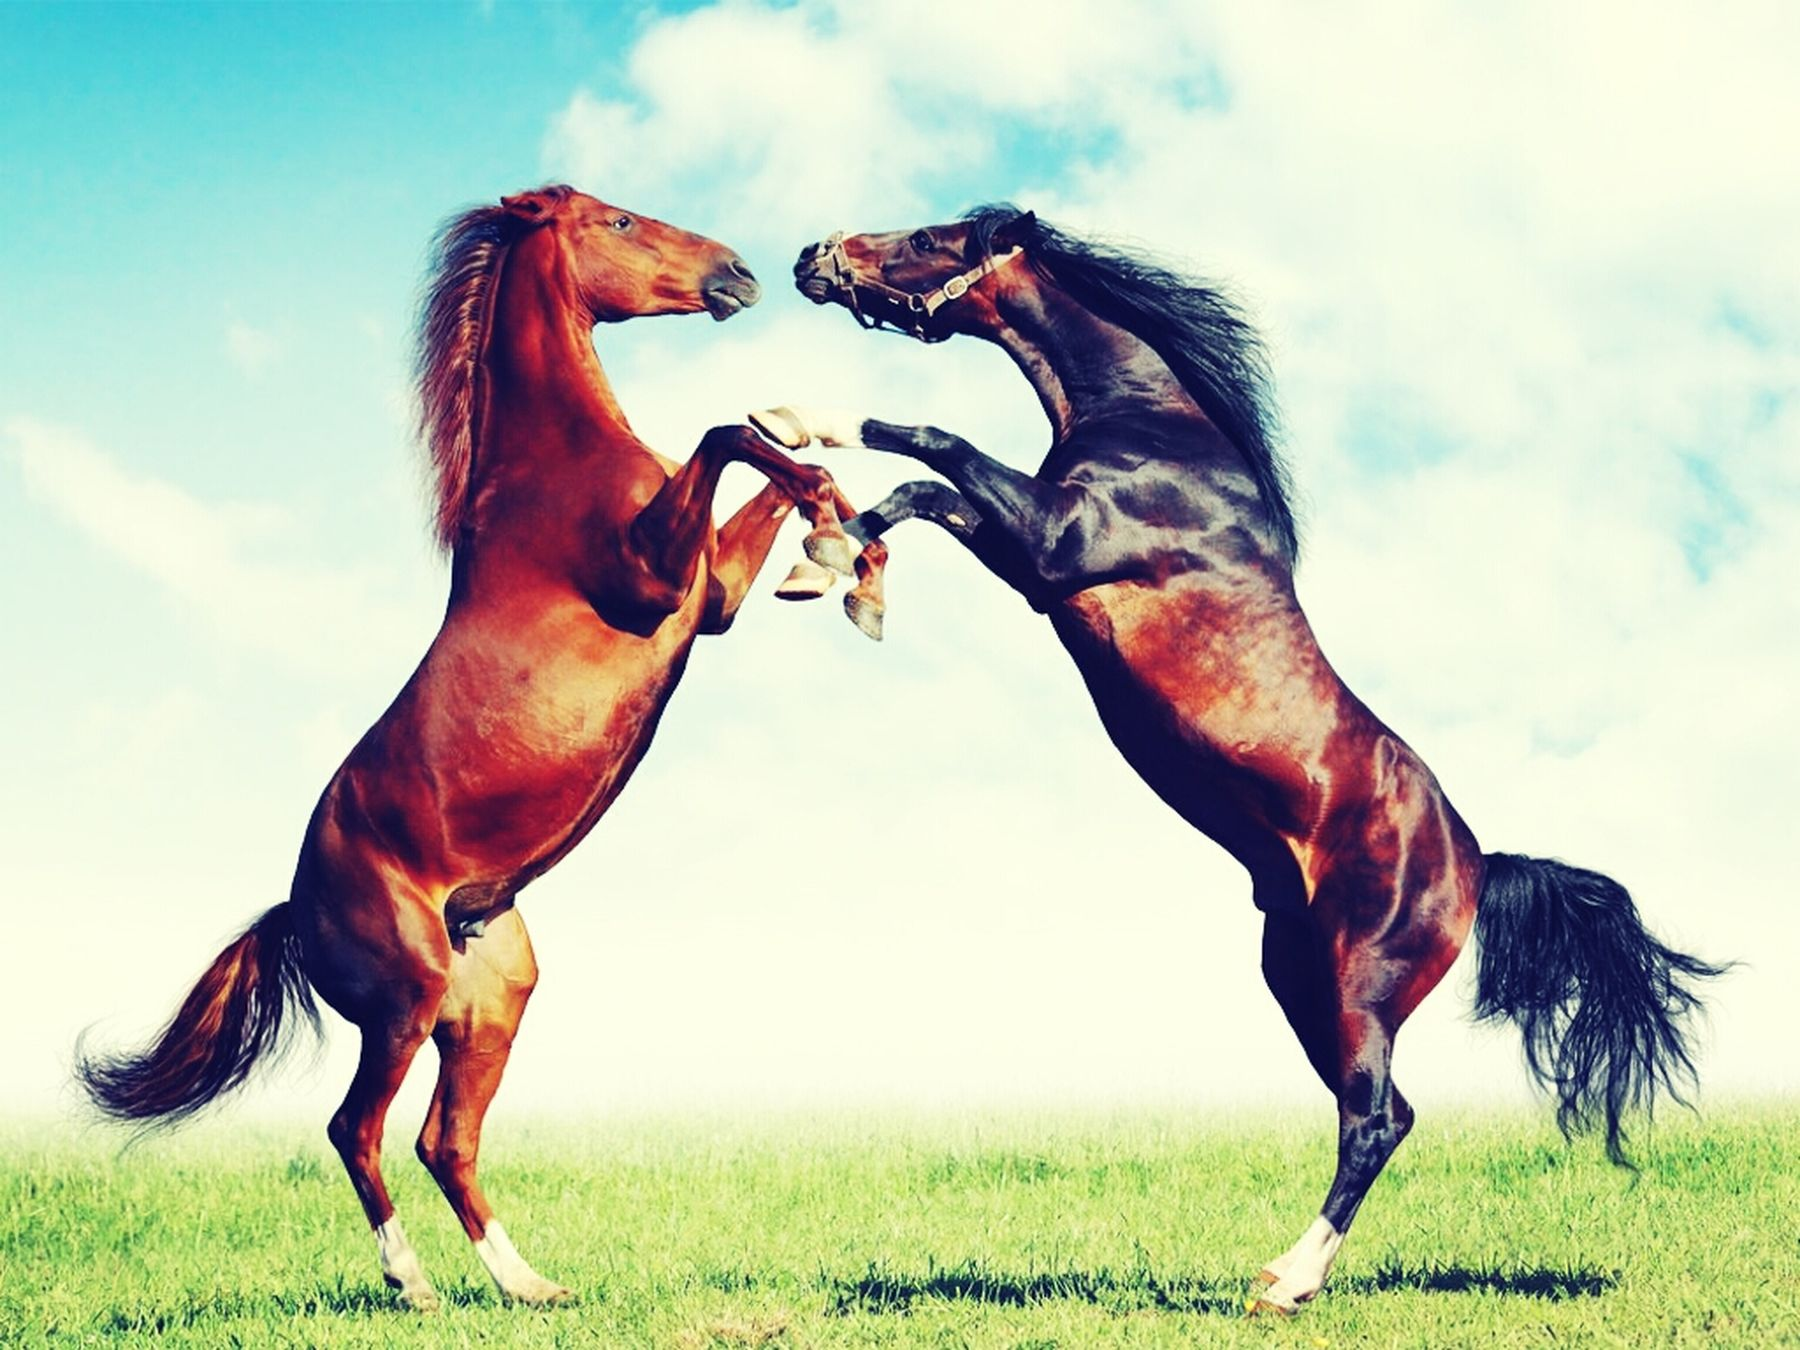 My love for horses <3 Oh God! ^.^